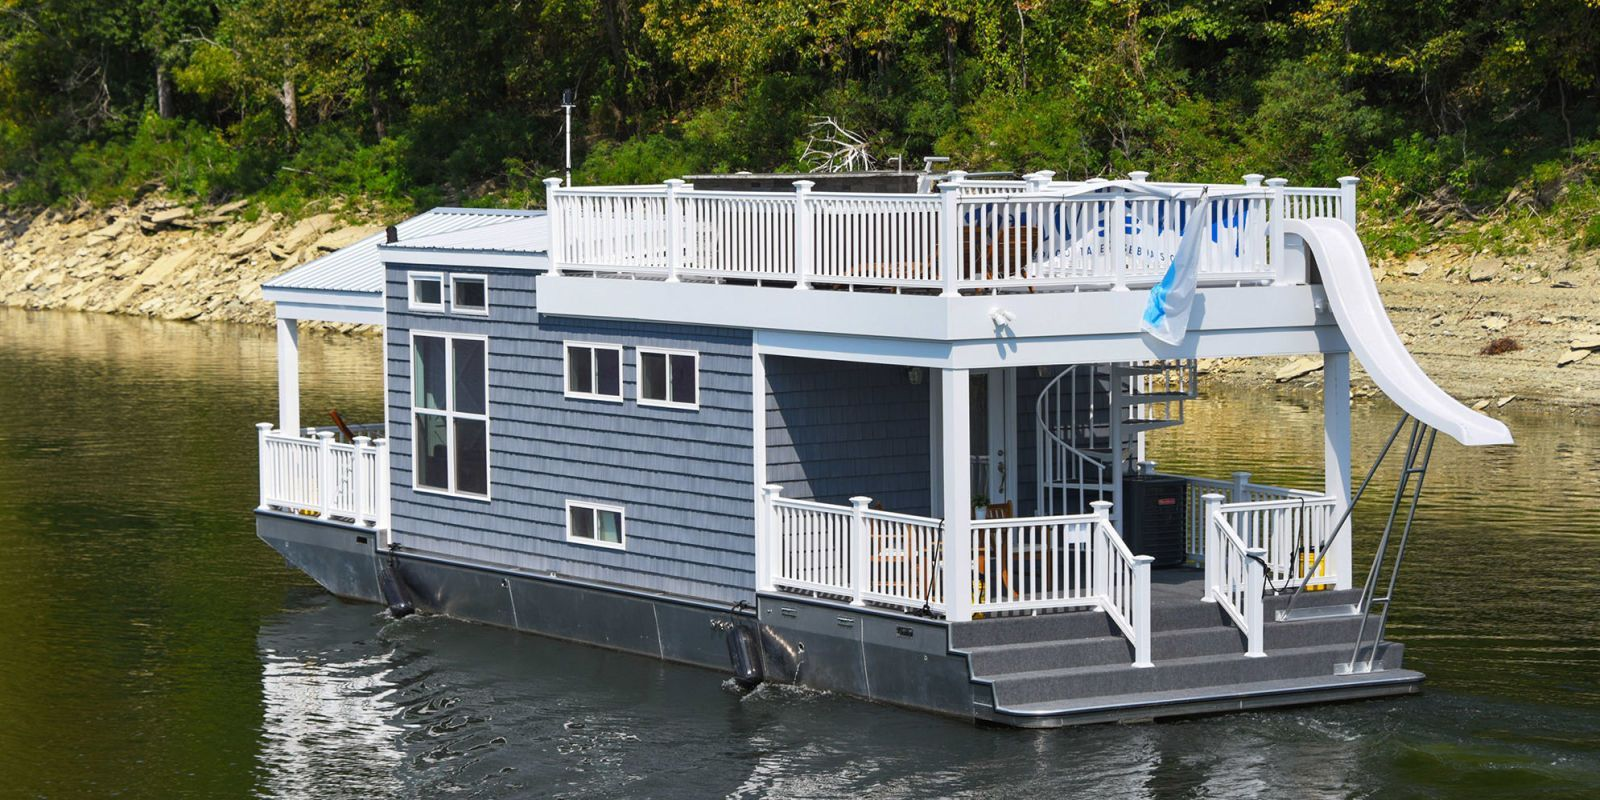 This floating tiny house is perfect for those who dream of living on